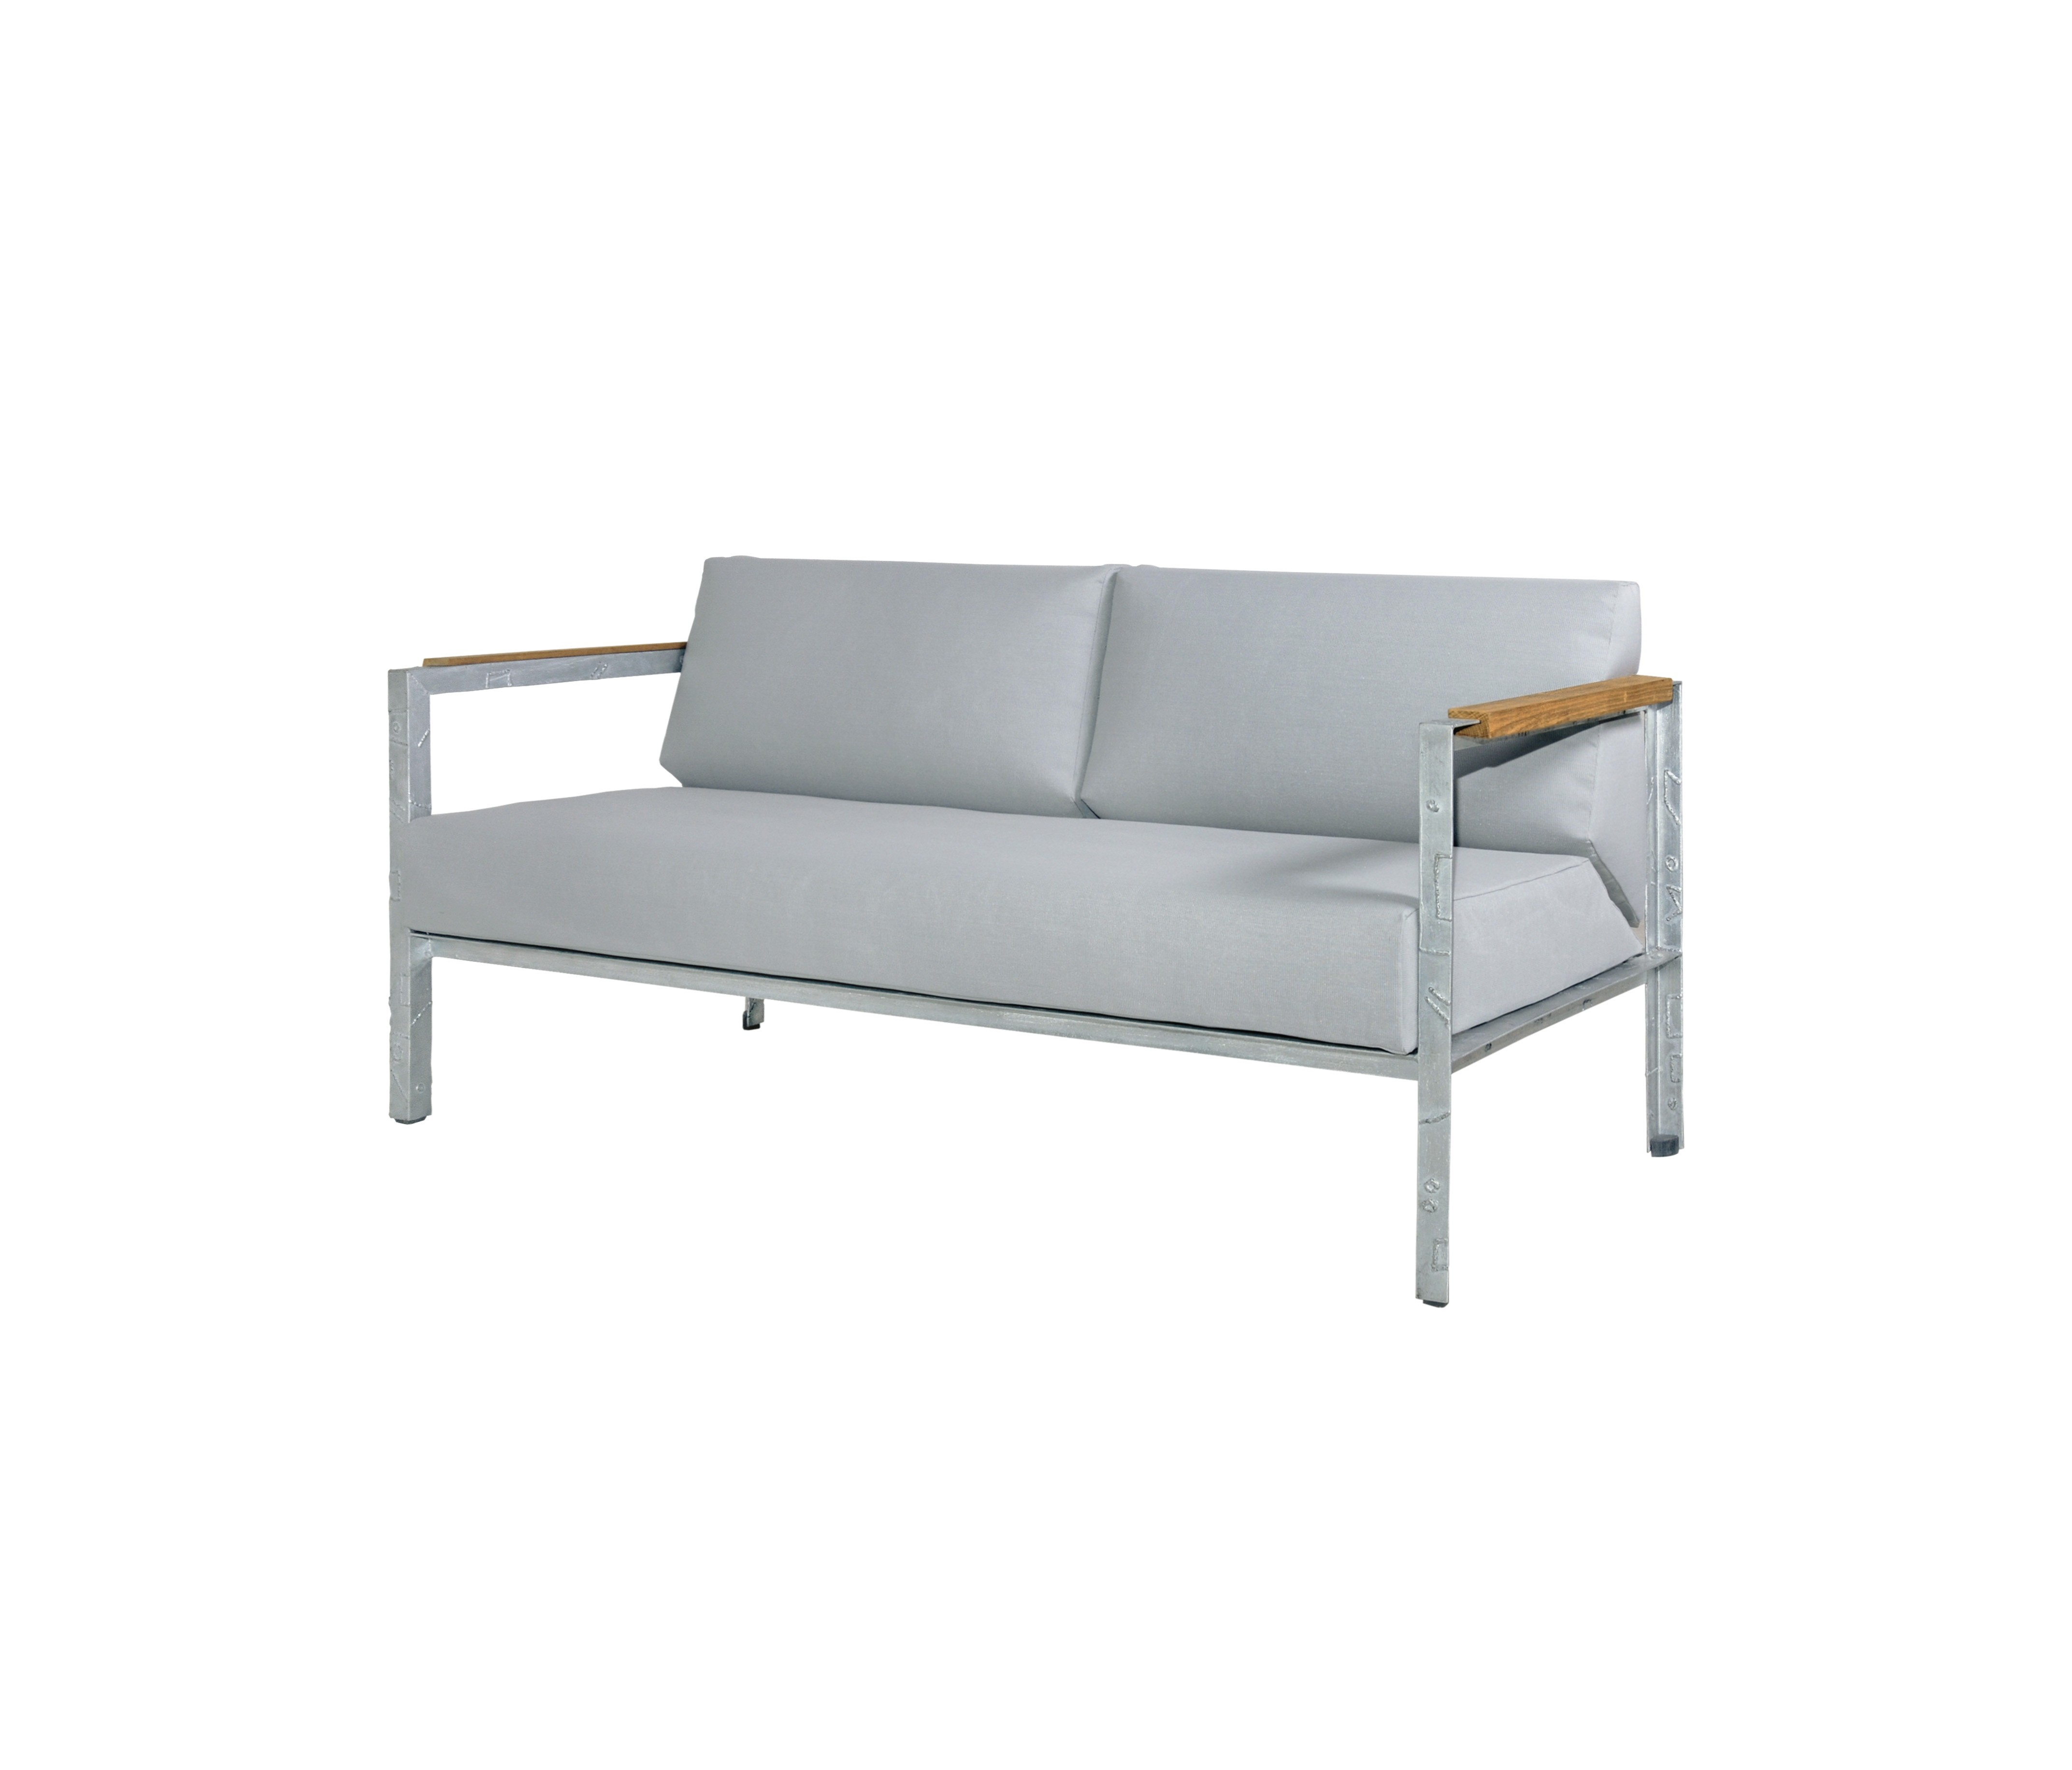 Industrial Lounge 2 Seater NOW $1,395